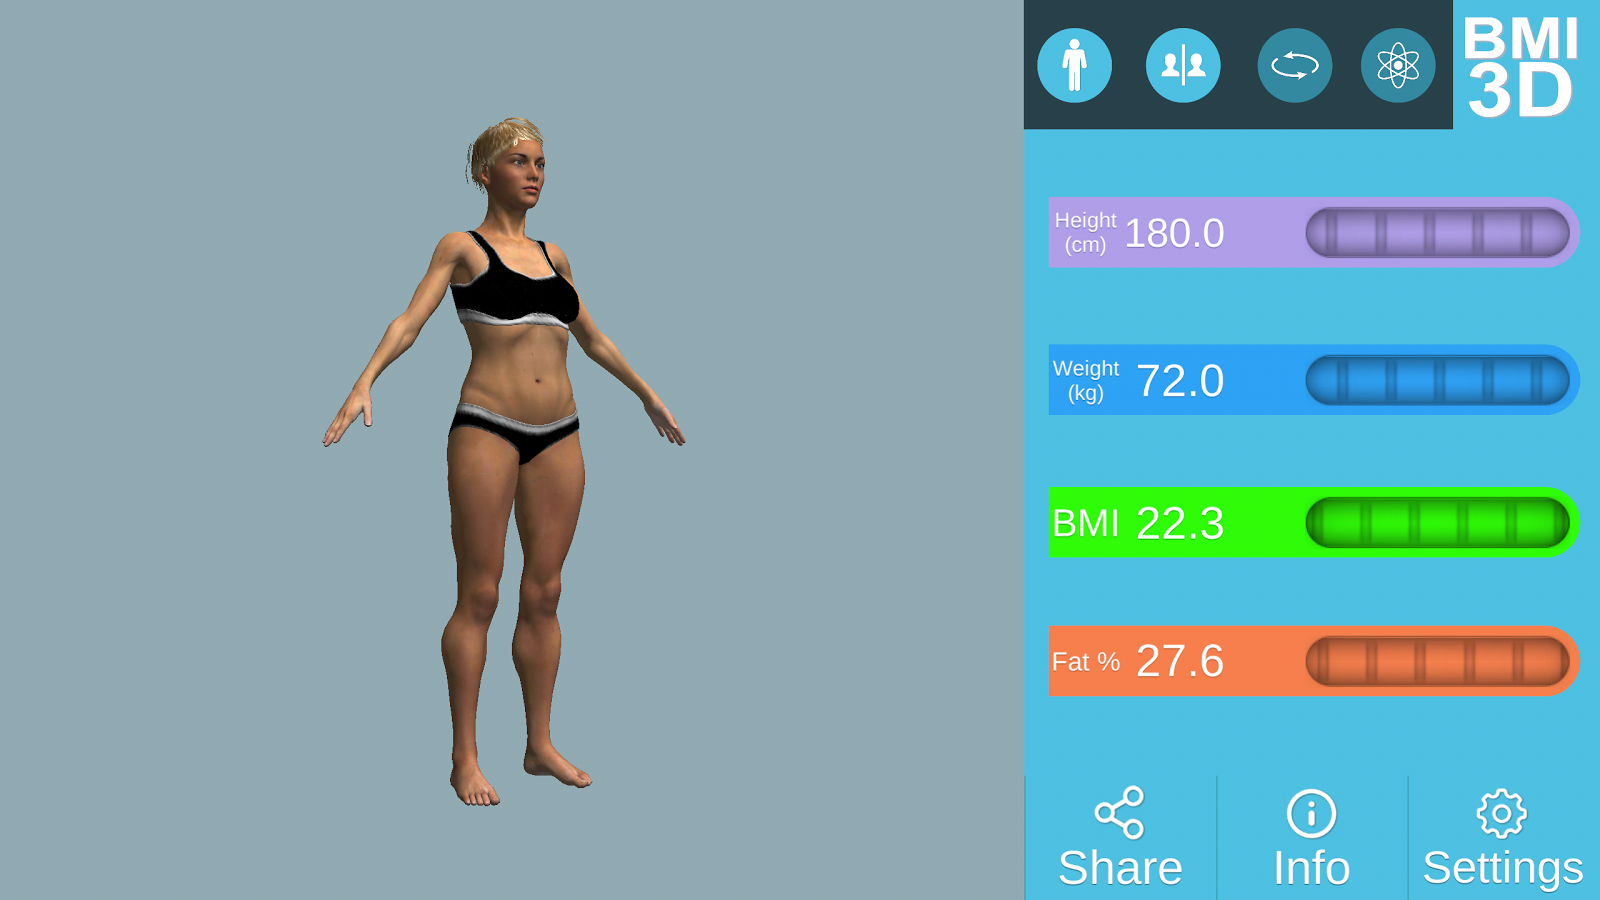 BMI 3D - Body Mass Index in 3D- screenshot